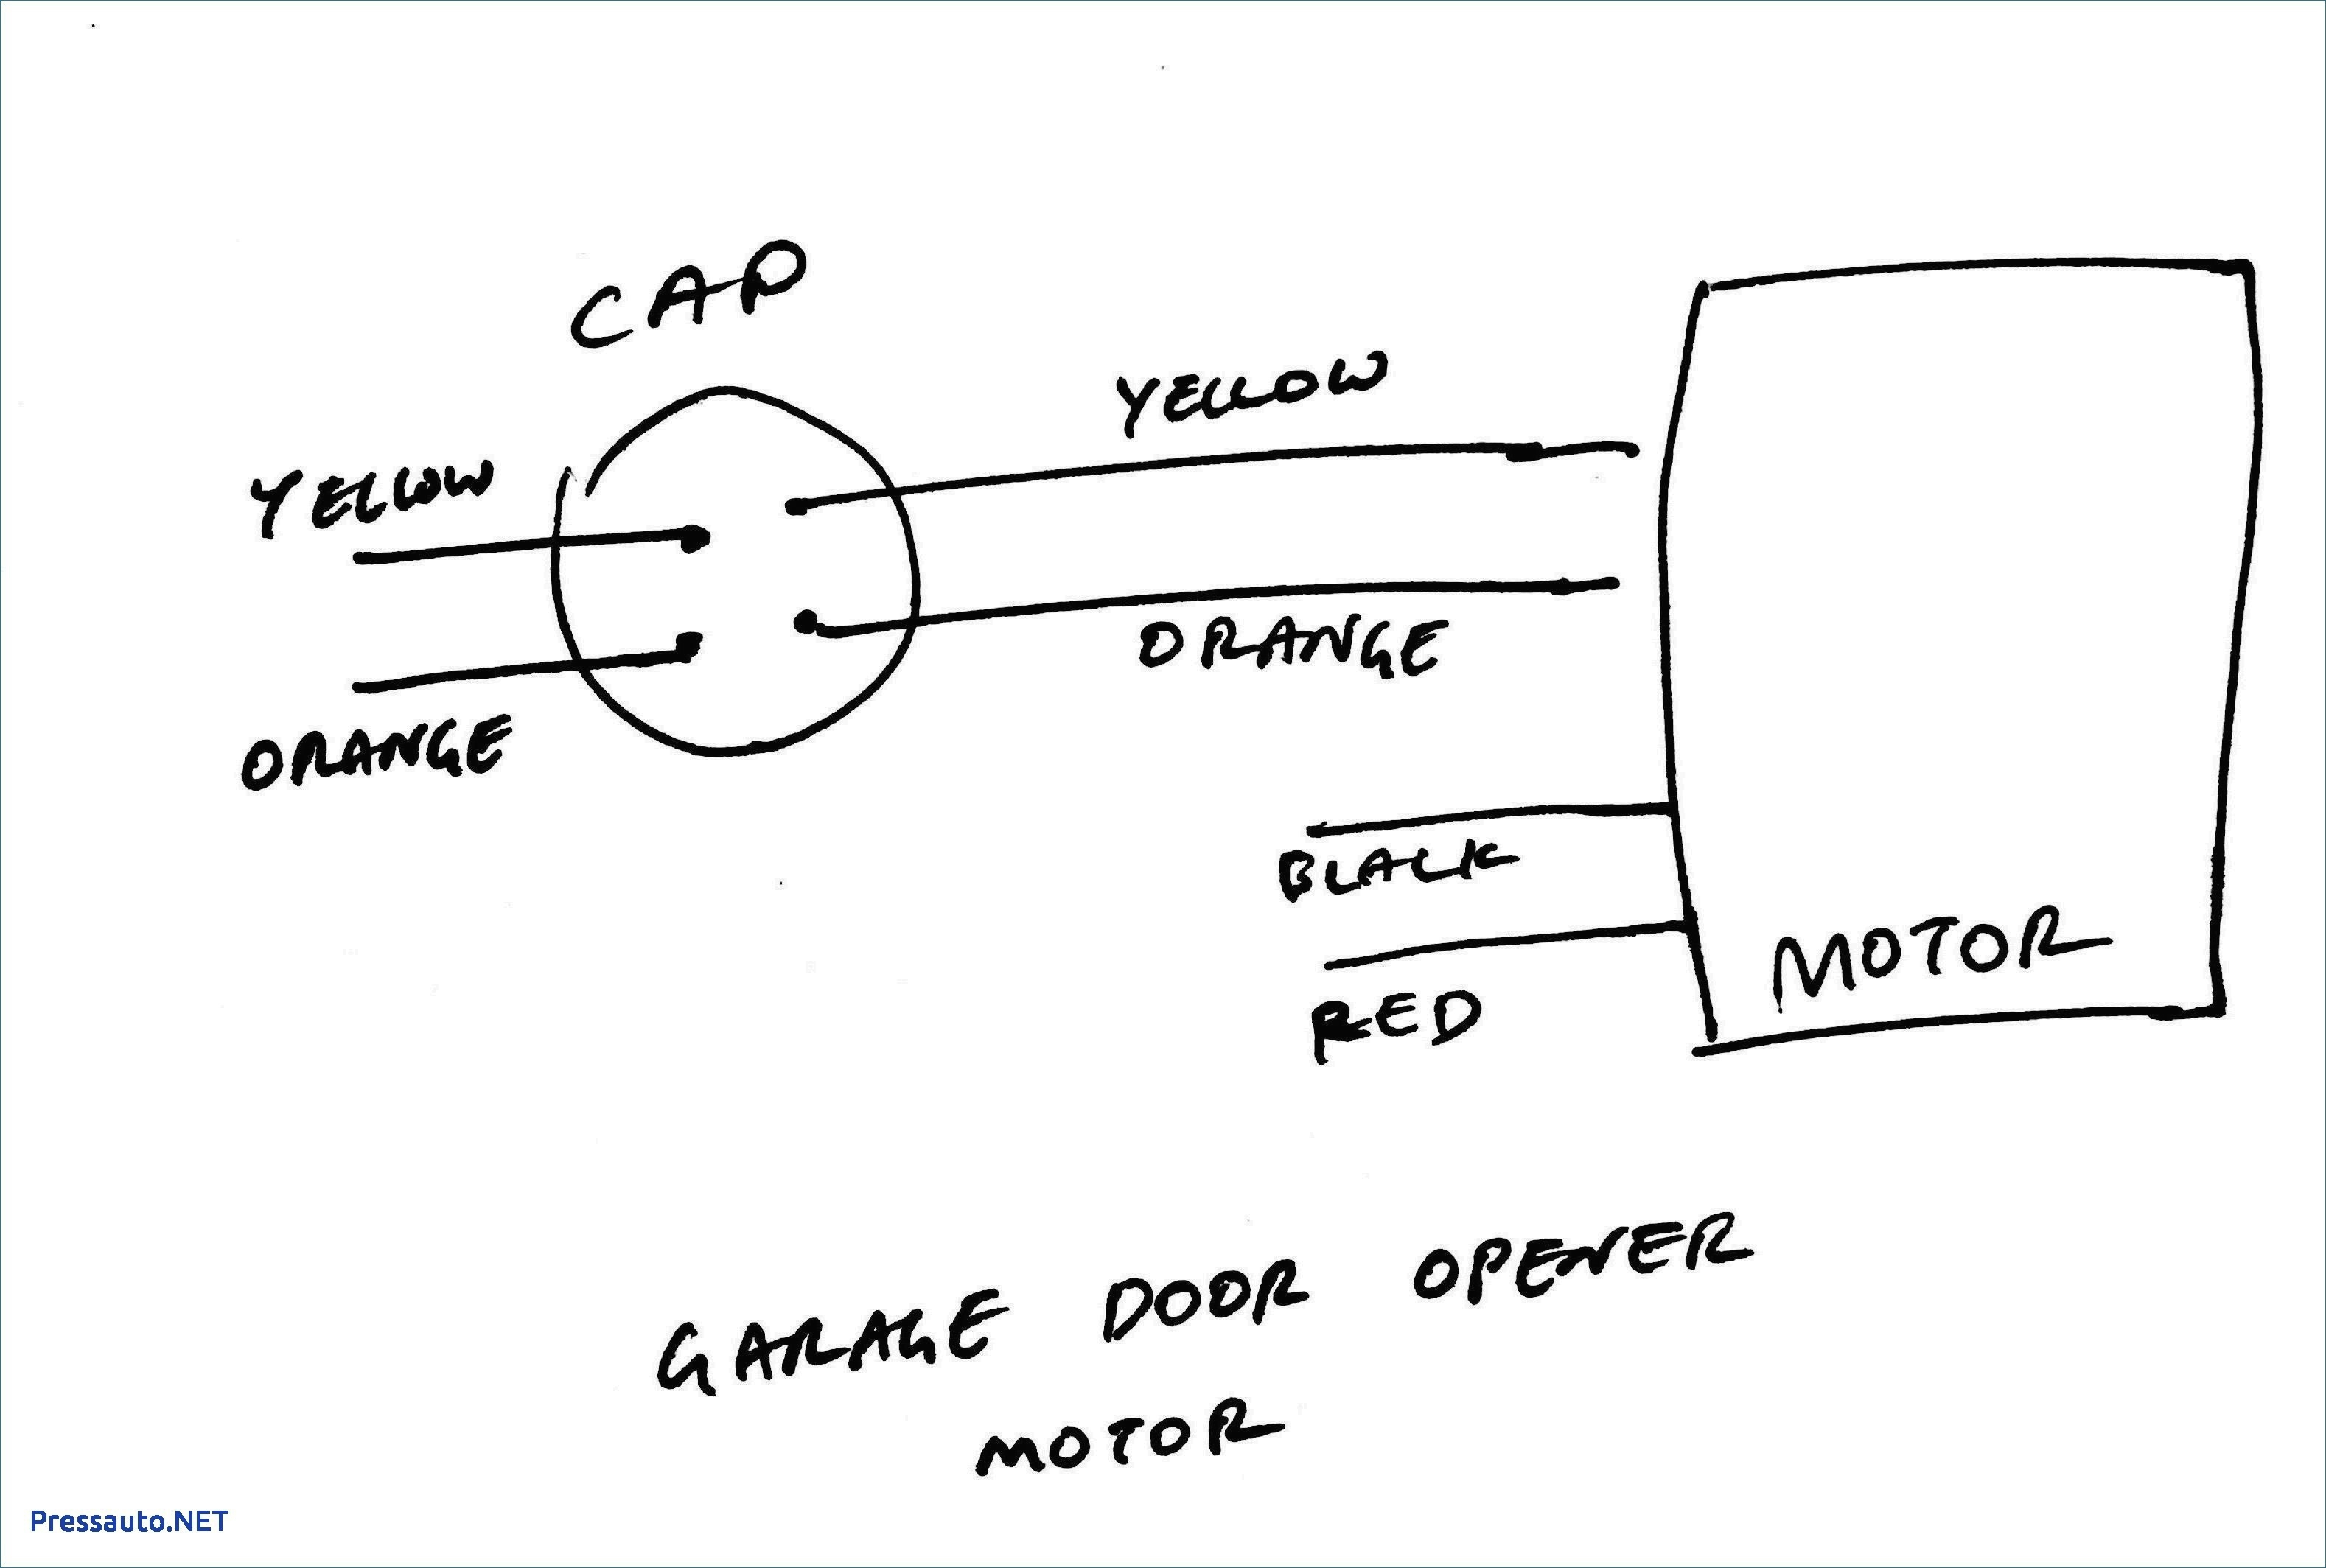 emerson motors wiring diagrams 3 phase 12 wires repair machine 3 Phase Wiring to Single Phase 240